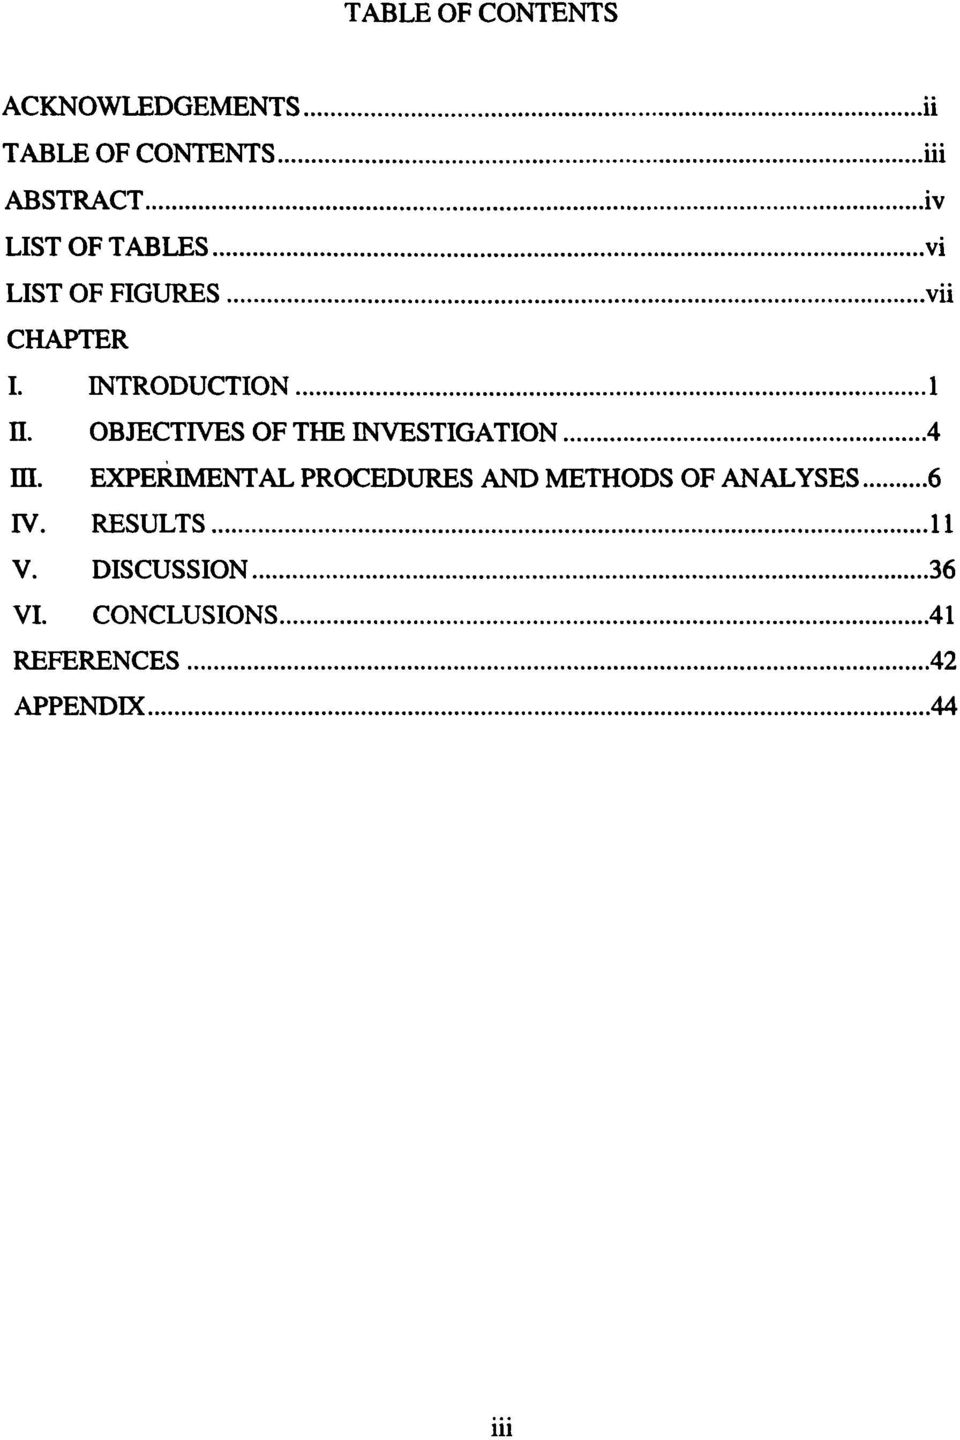 OBJECTIVES OF THE INVESTIGATION m.